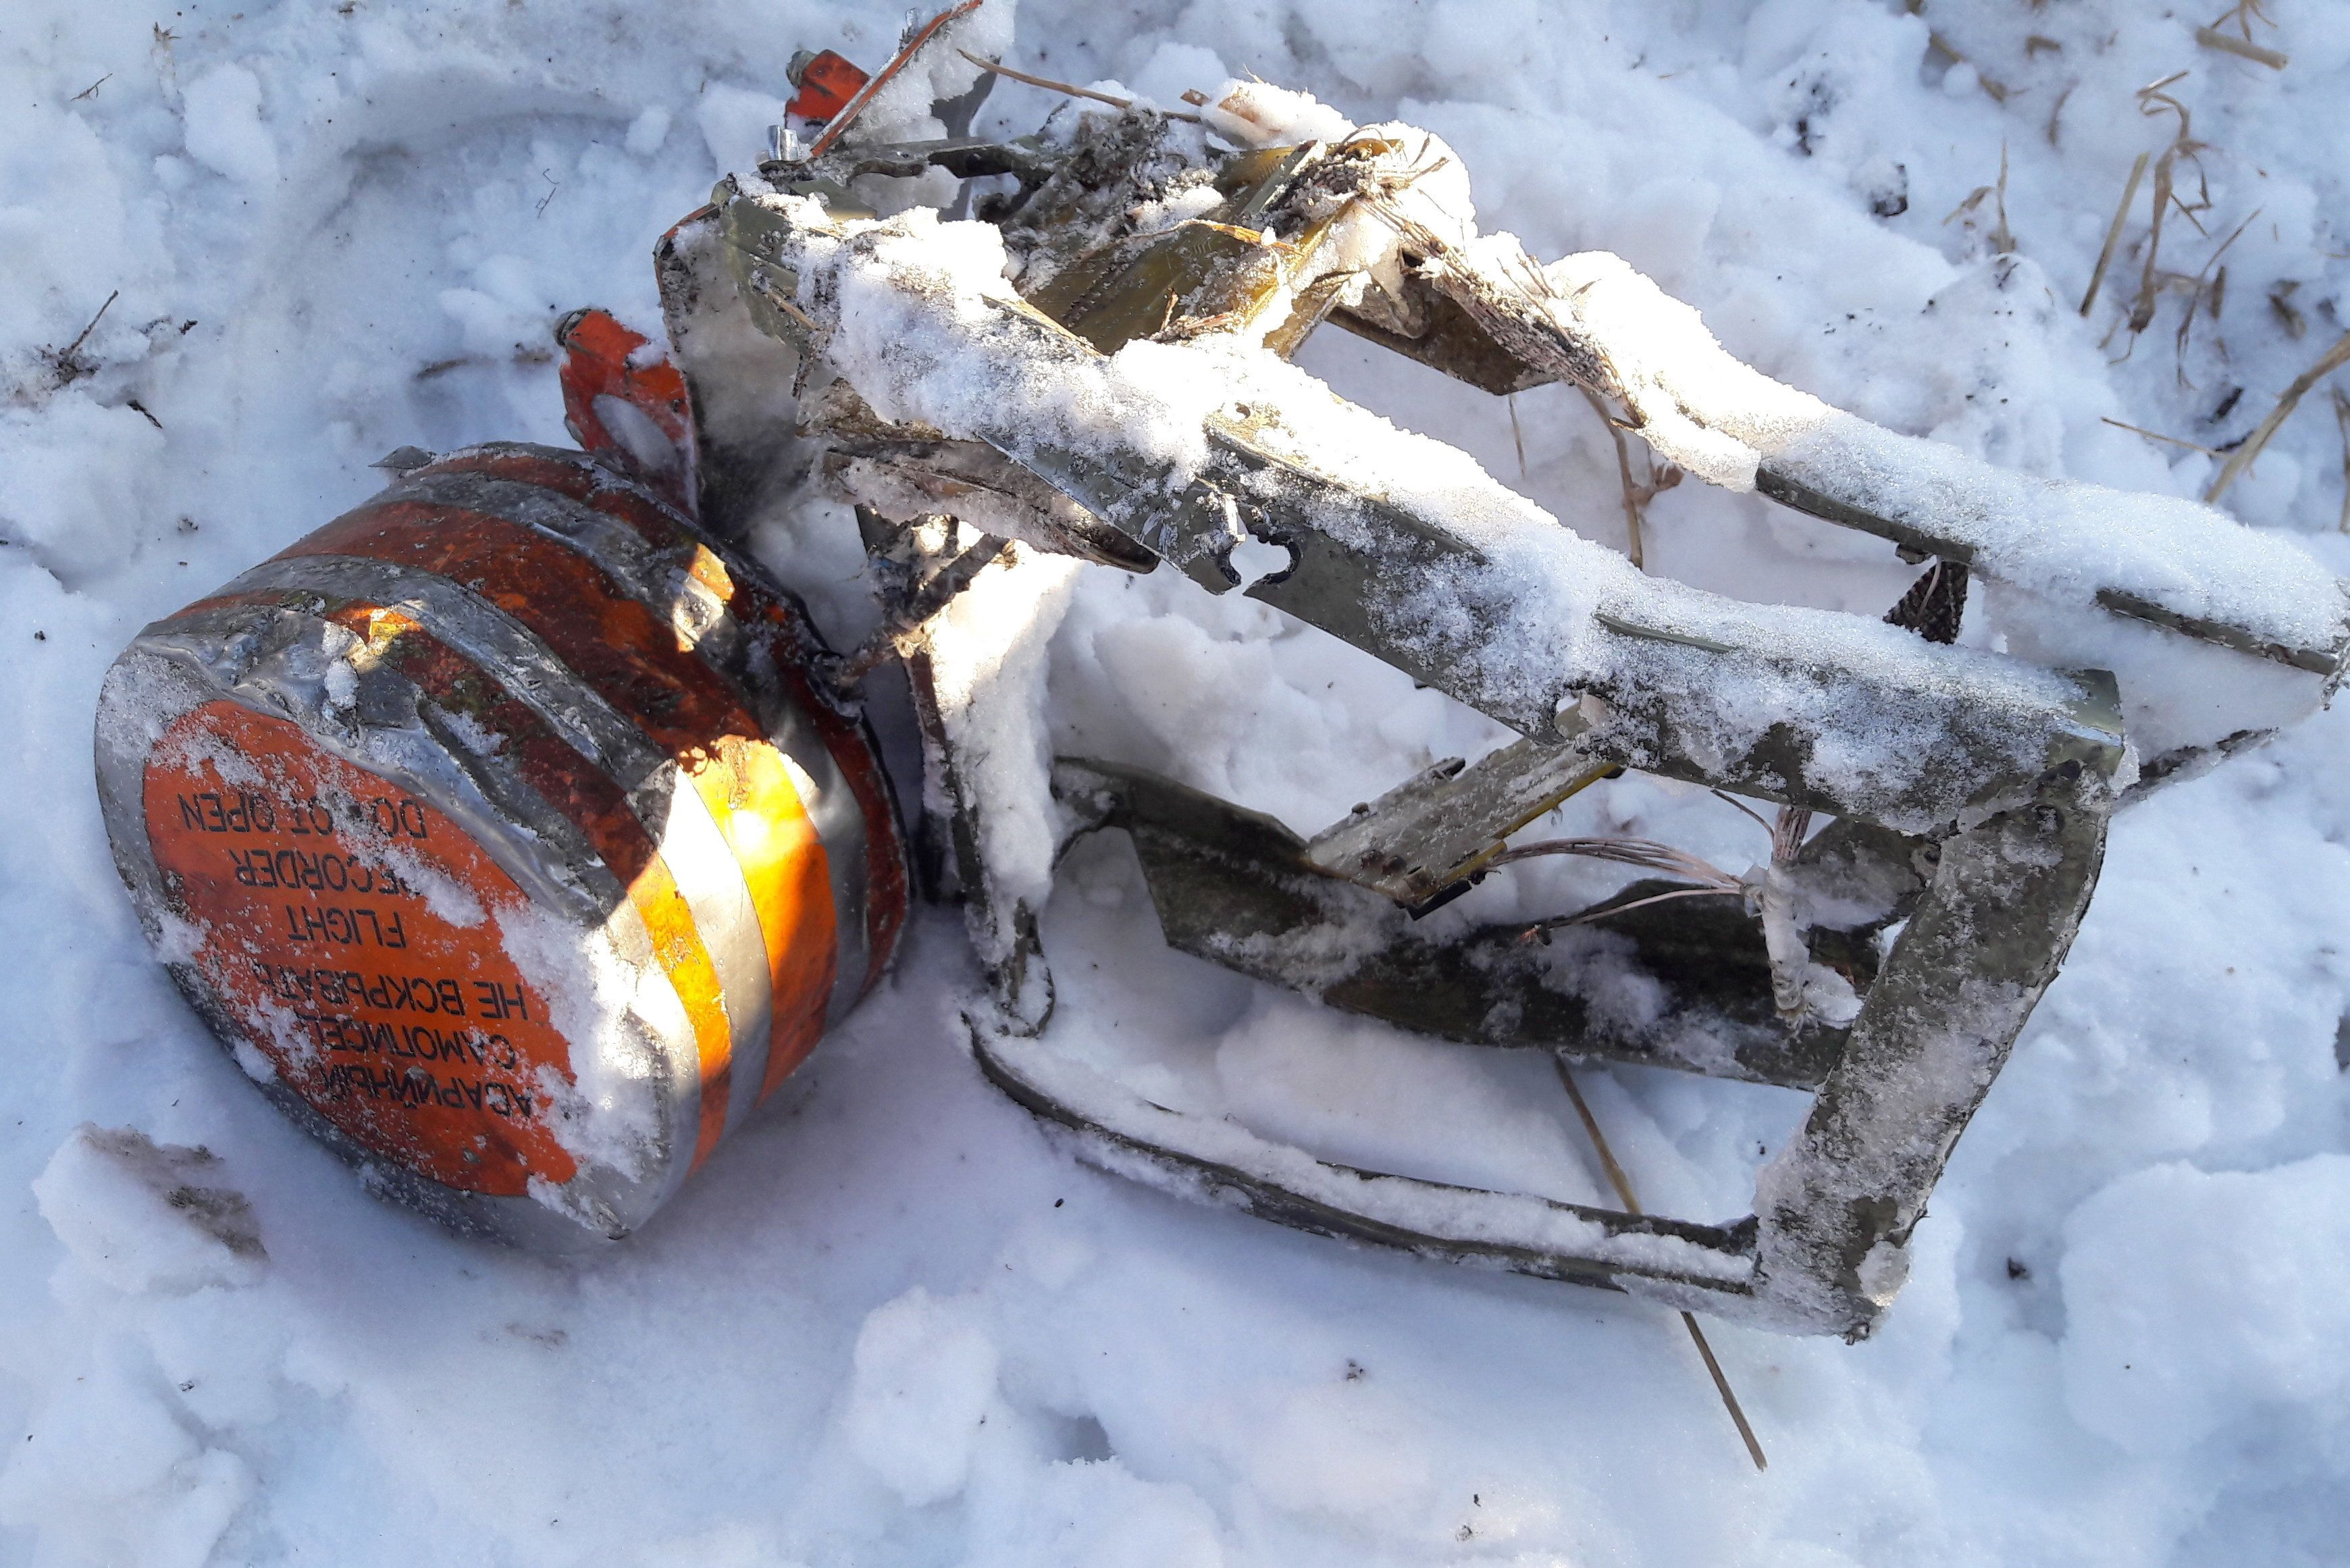 <strong>A flight recorder found at the scene of the crash</strong>